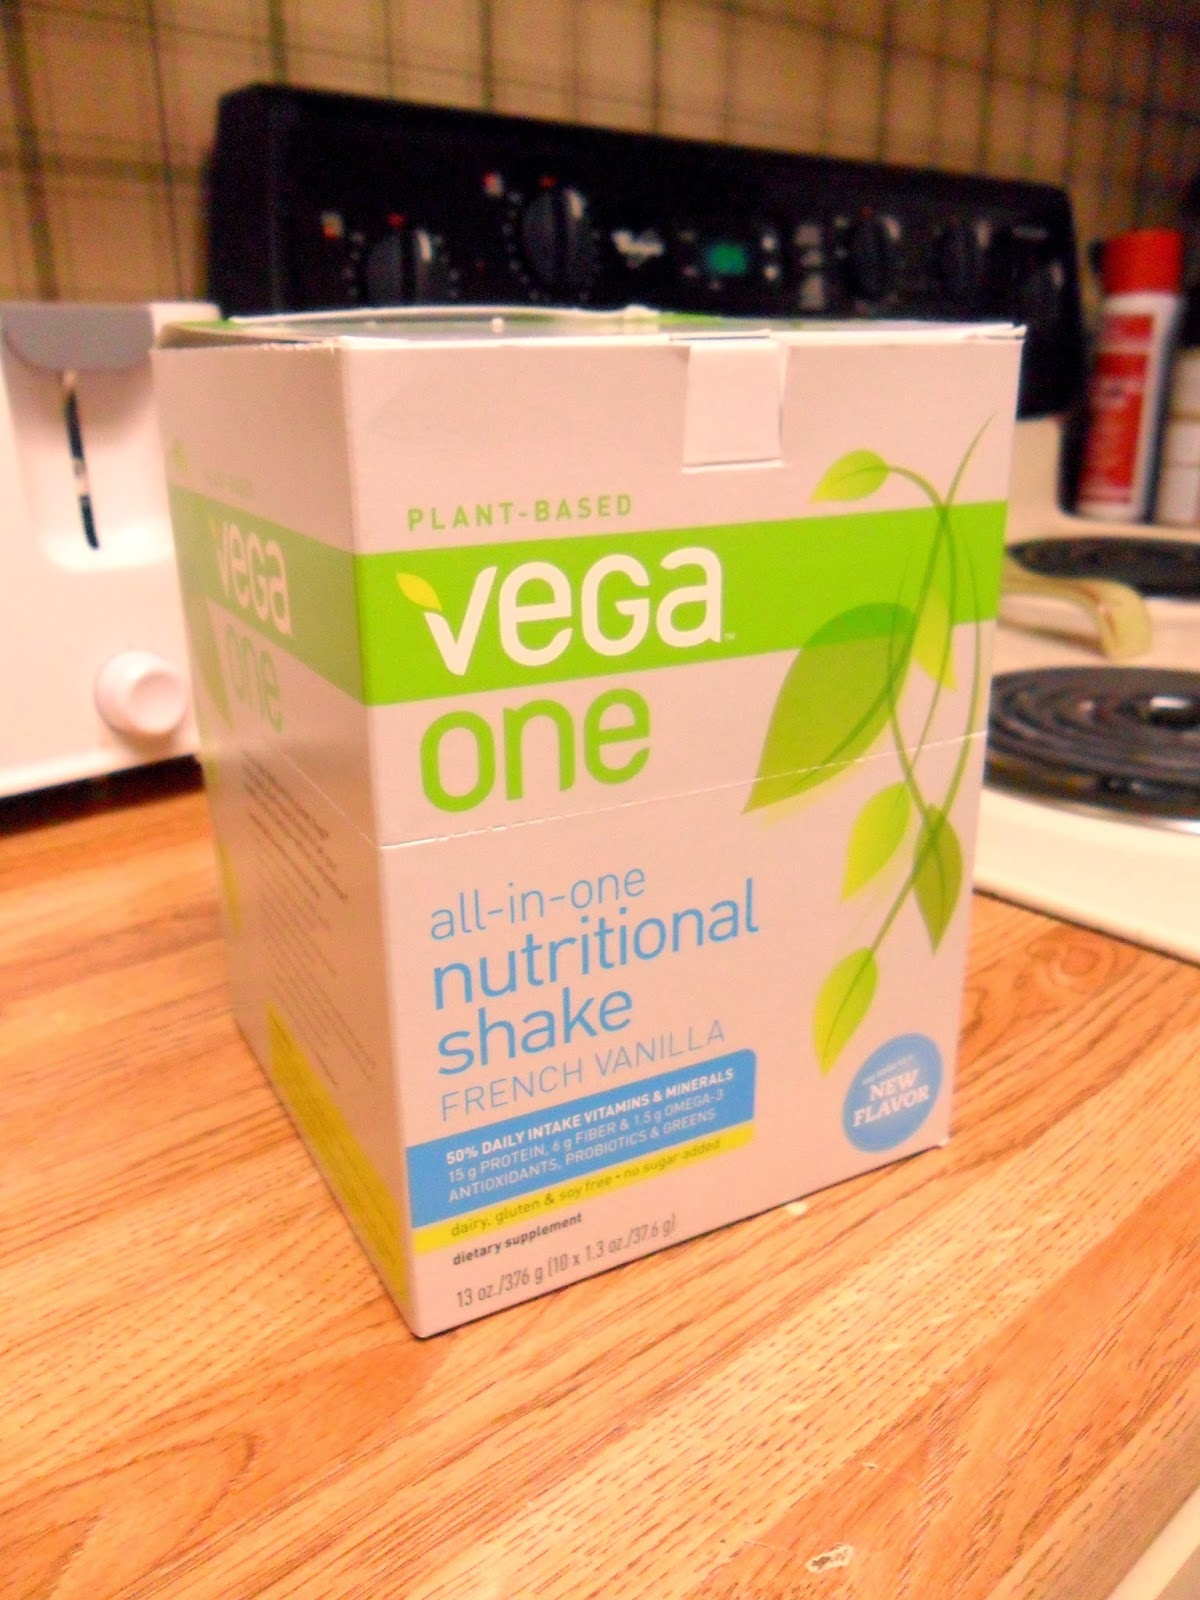 Vega One all-in-one nutritional shake French vanilla #OneChange